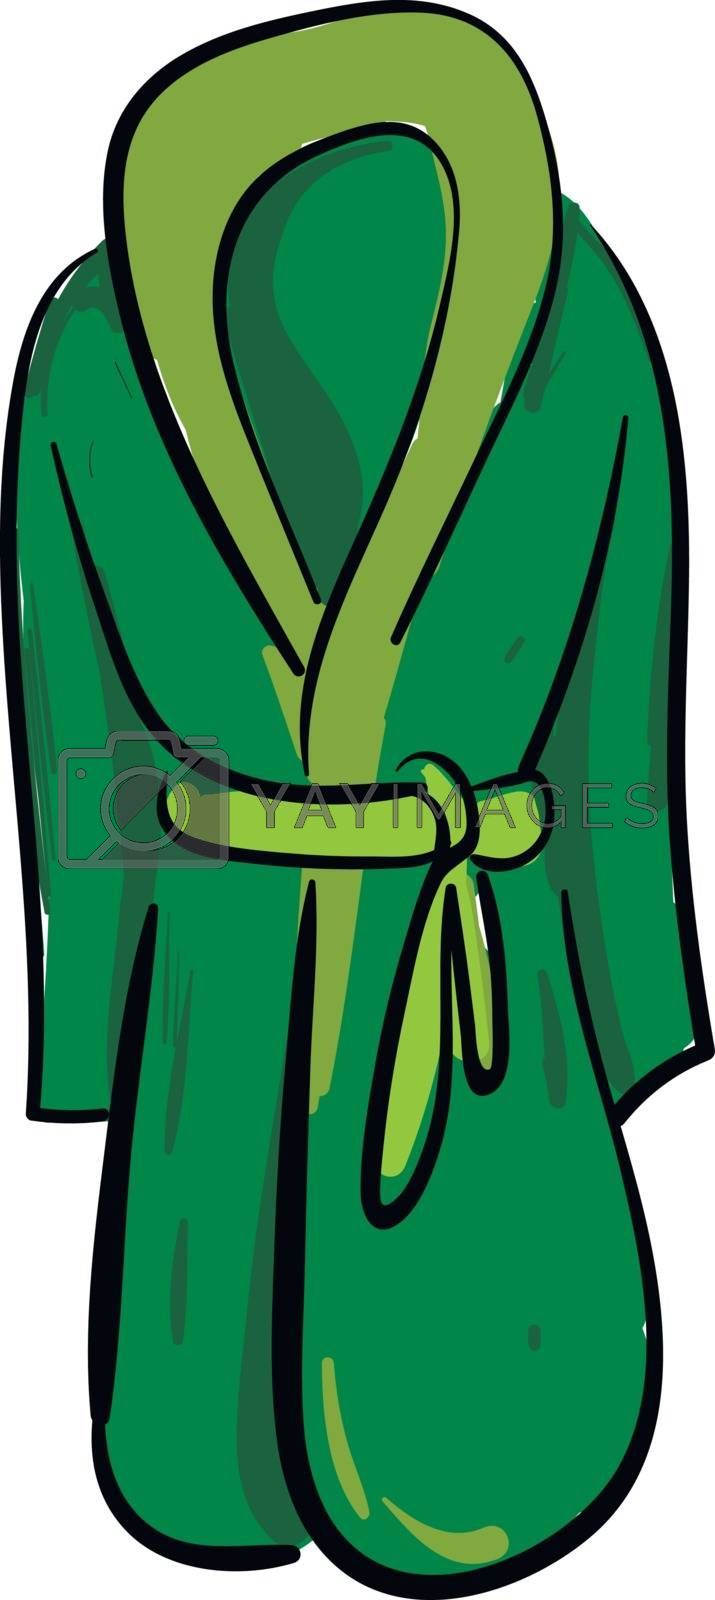 Royalty free image of Clipart of a showcase green-colored bathrobe over white backgrou by Morphart